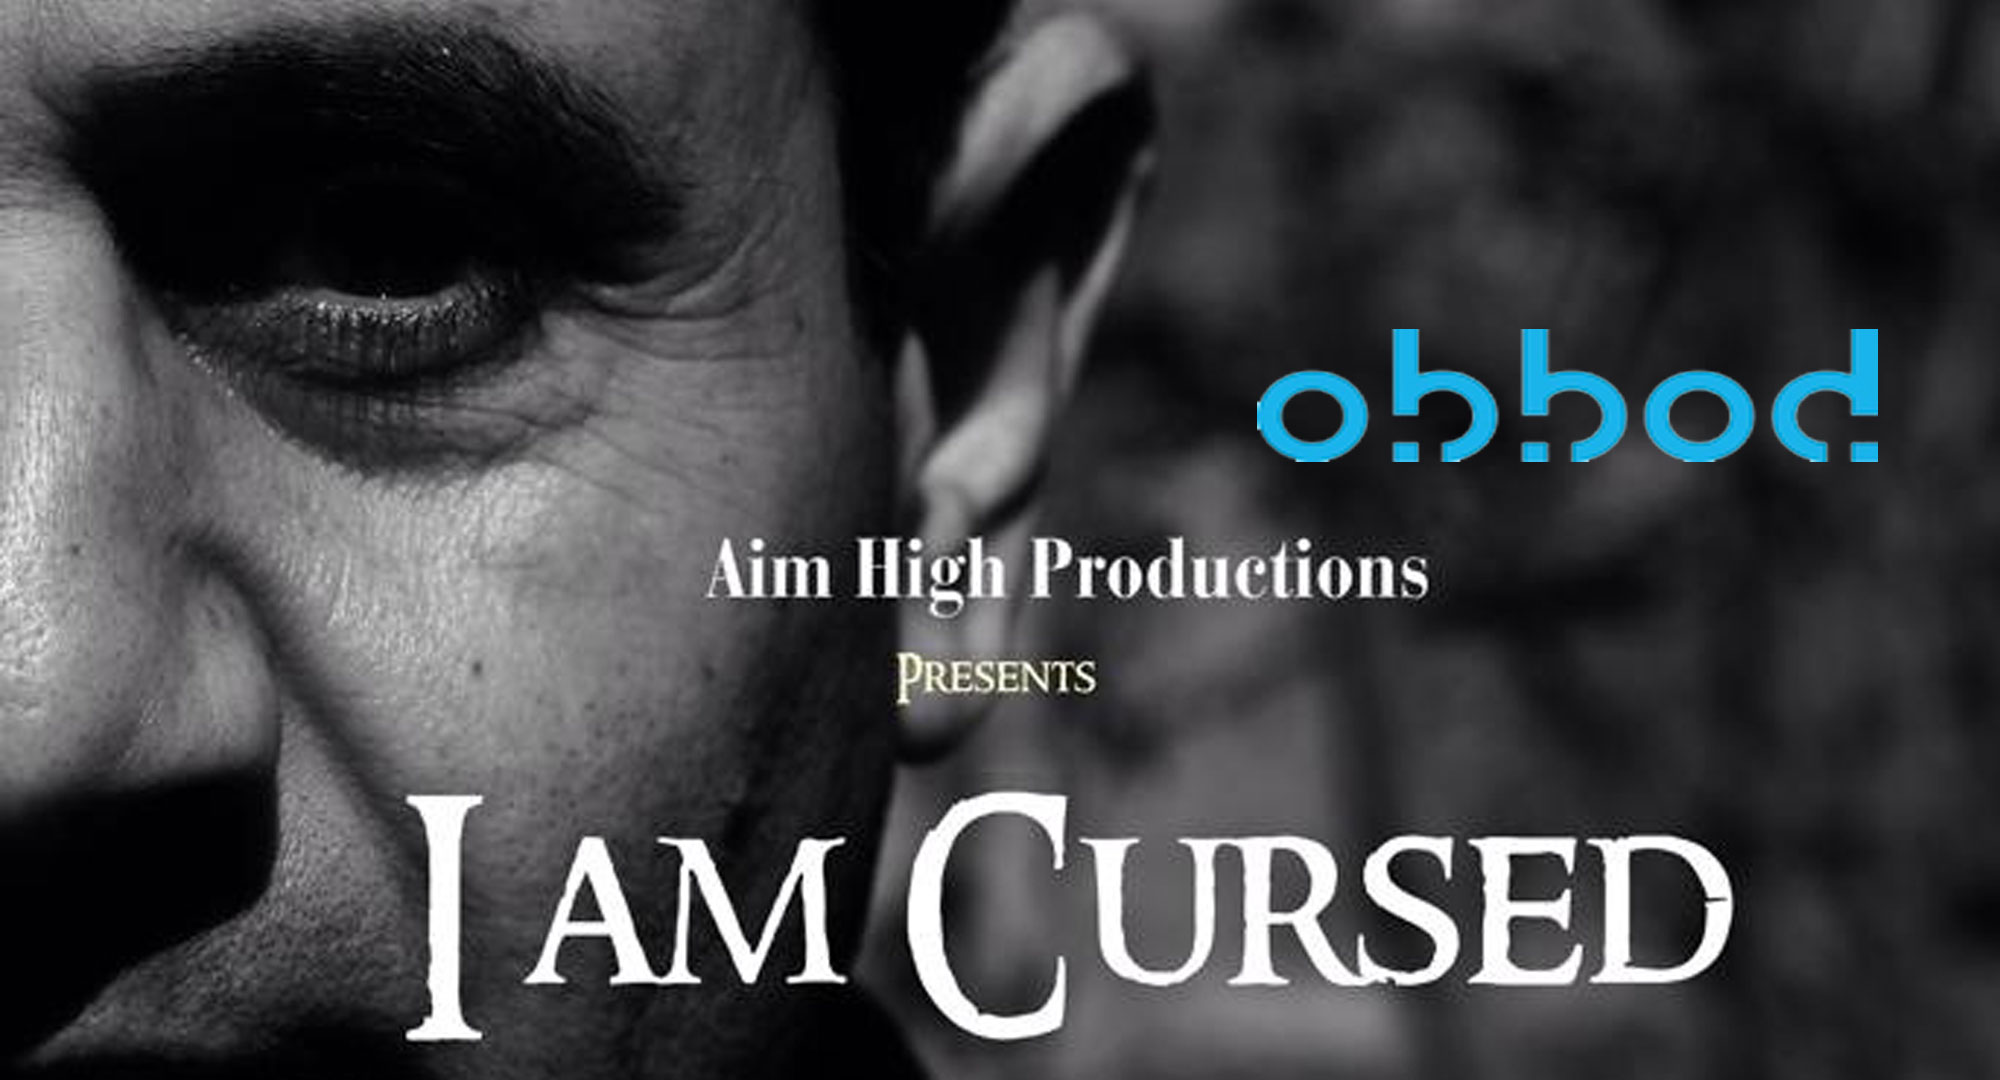 watch I am Cursed on VOD